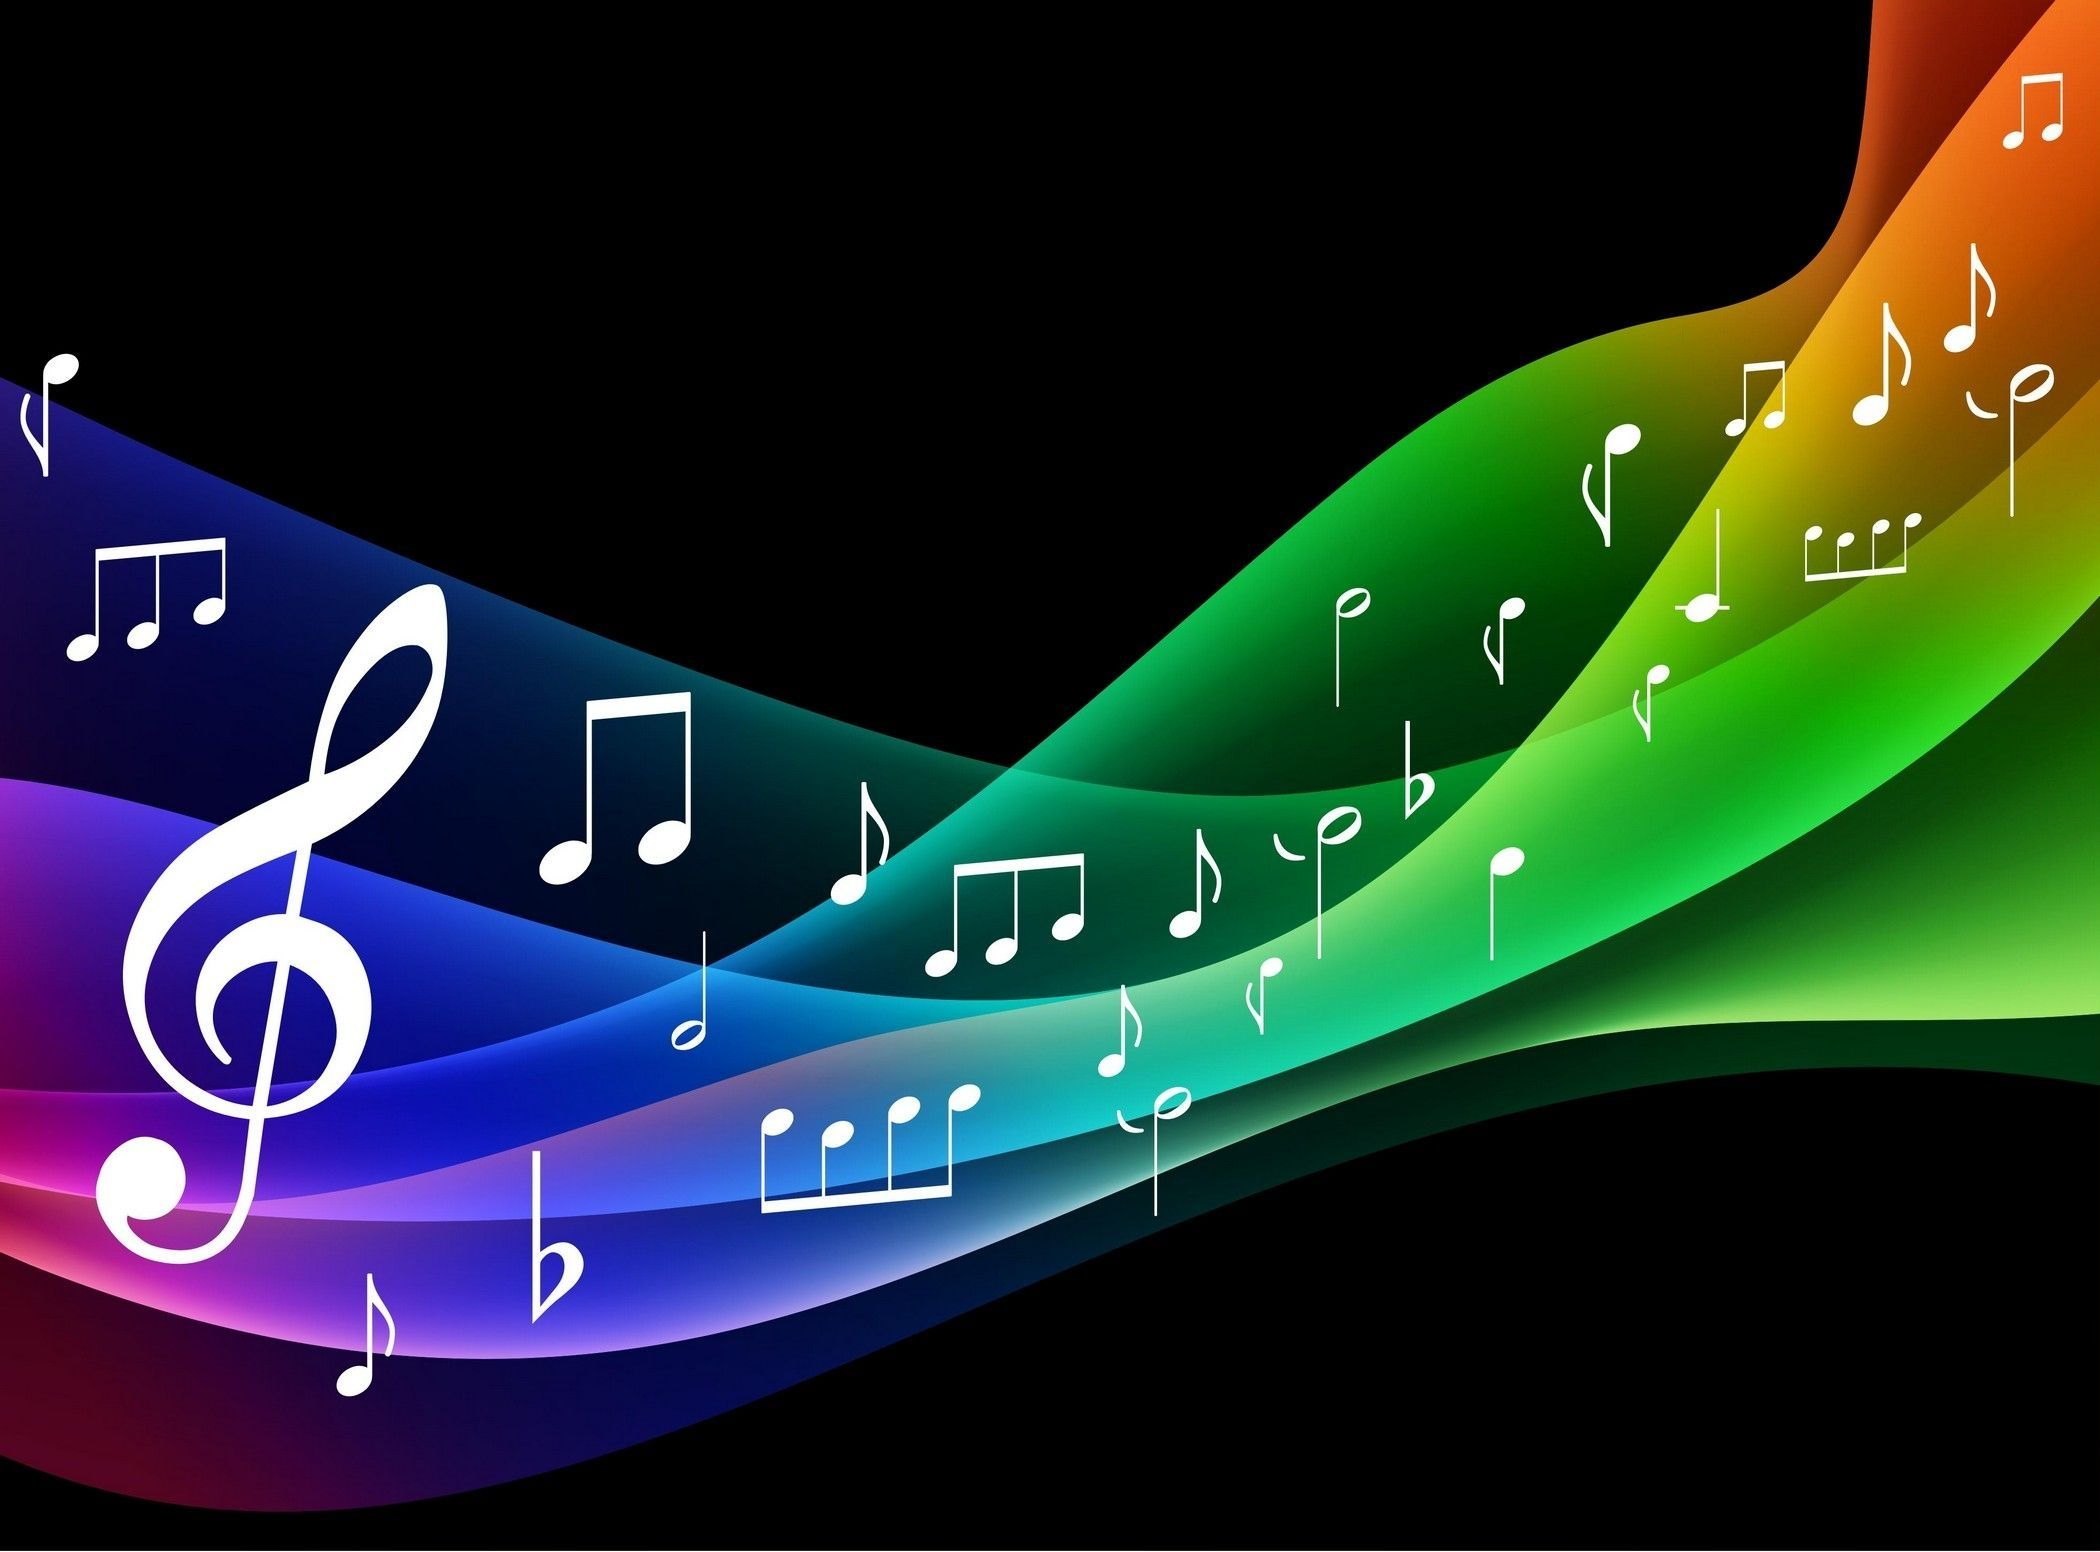 Old Music Score 4k Hd Desktop Wallpaper For 4k Ultra Hd Tv: Background Images About Music HD